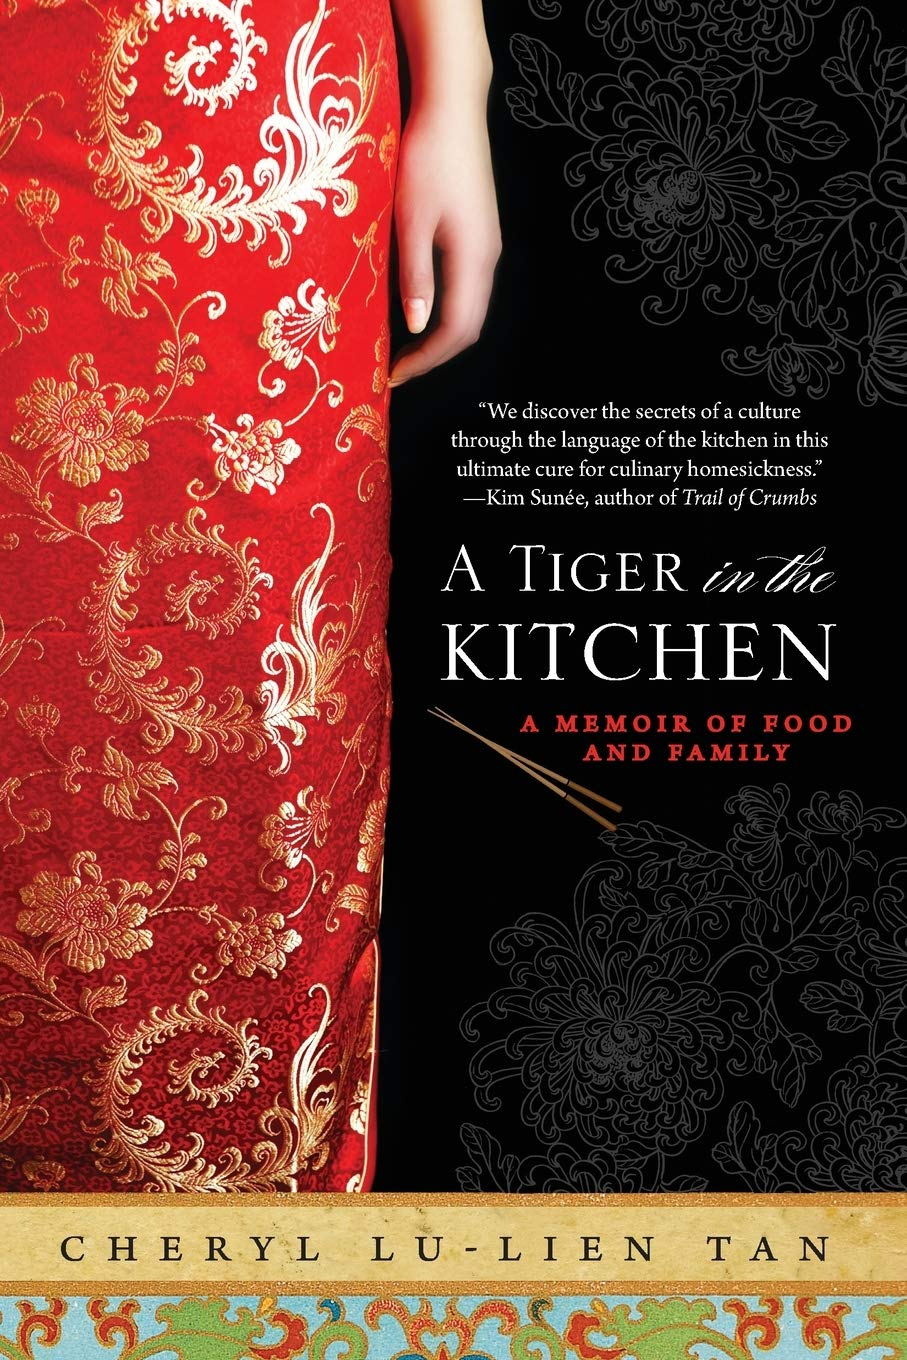 A Tiger in the Kitchen: A Memoir of Food and Family: Cheryl Lu-Lien Tan:  9781401341282: Amazon.com: Books